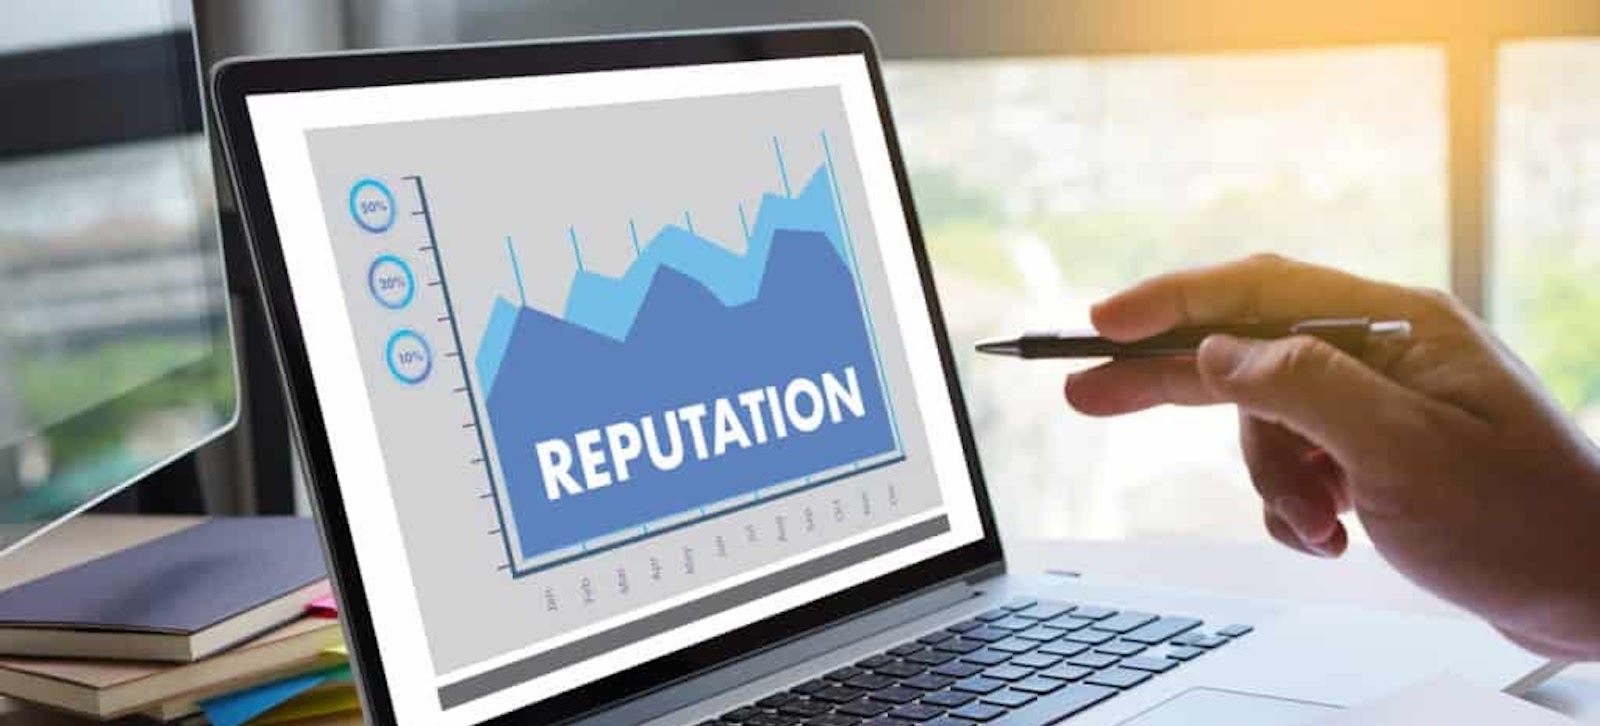 How Is Online Reputation Management Different From Public Relations Efforts Of The Past?